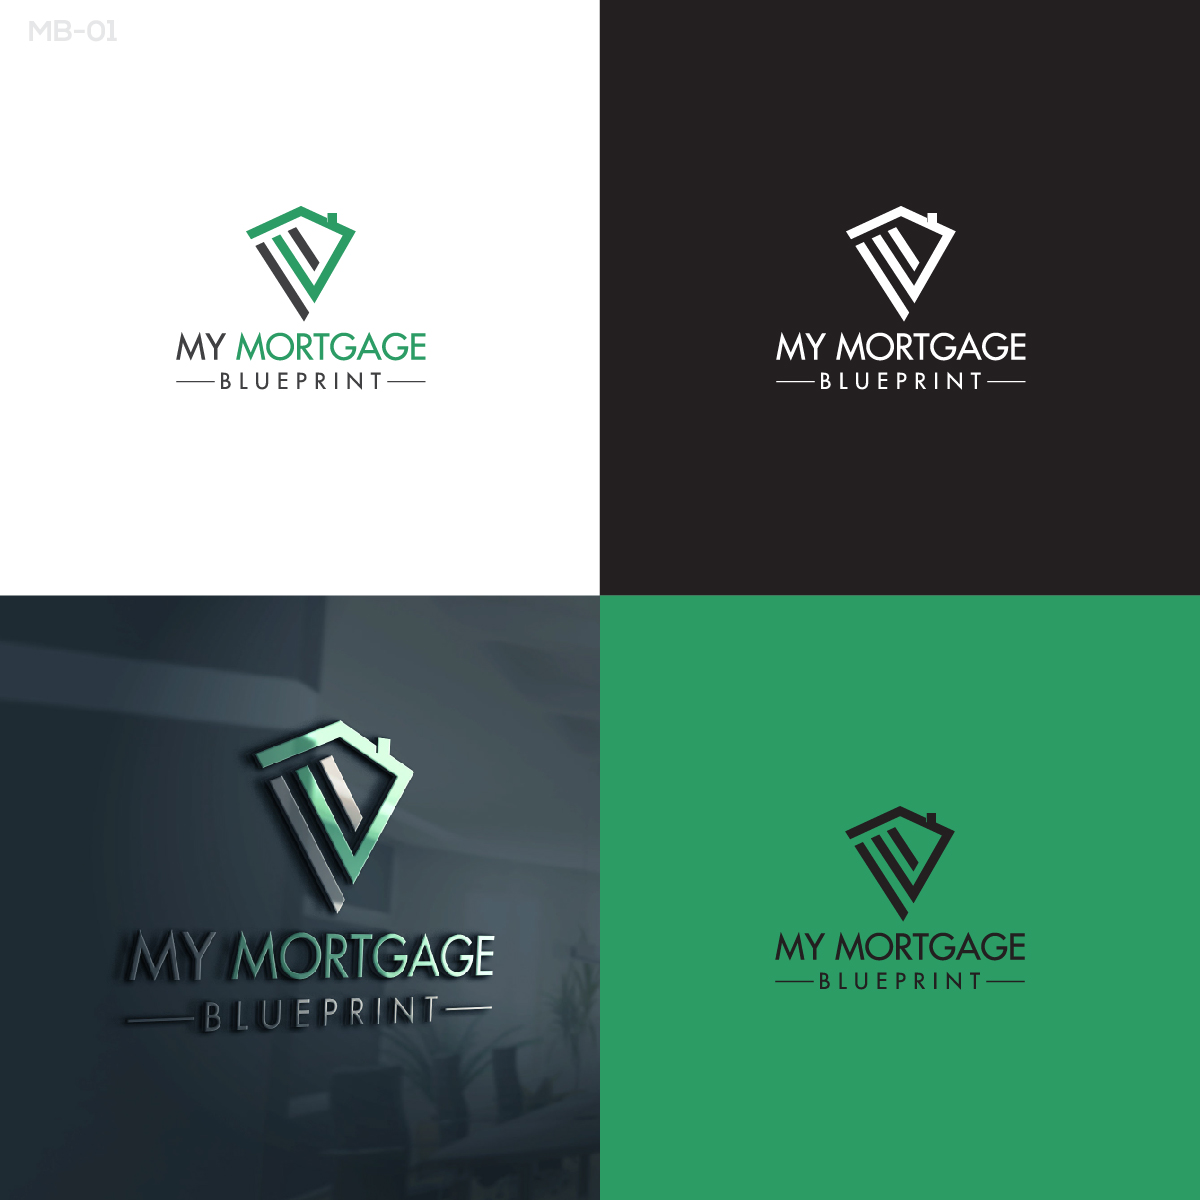 Professional bold logo design for my mortgage blueprint by esolbiz logo design by esolbiz for my mortgage blueprint design 15562630 malvernweather Gallery